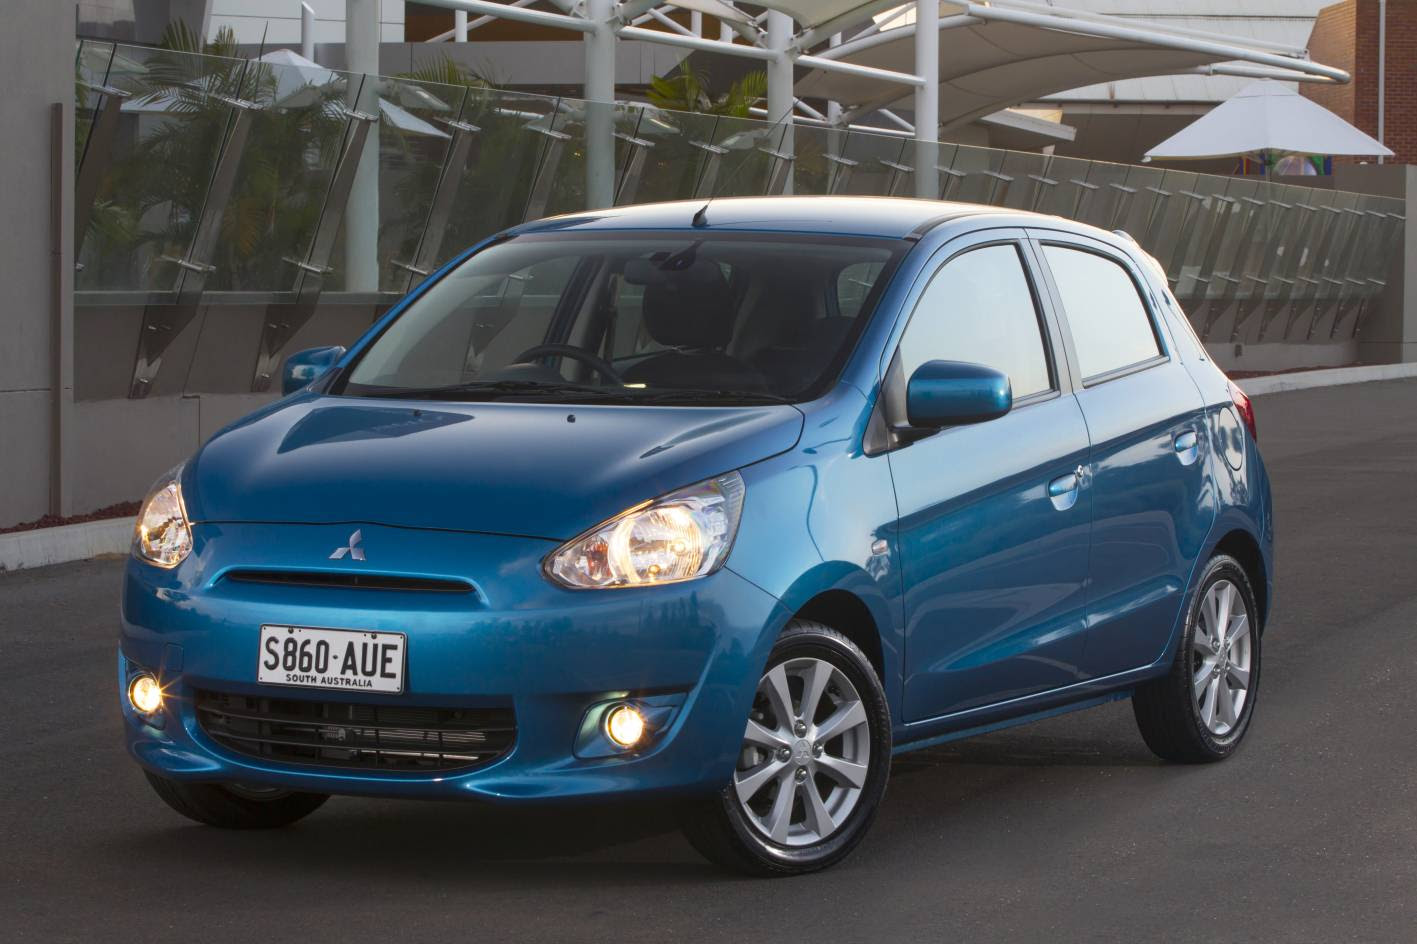 Mitsubishi Cars  News: 2014 Mirage from $12,990 driveaway